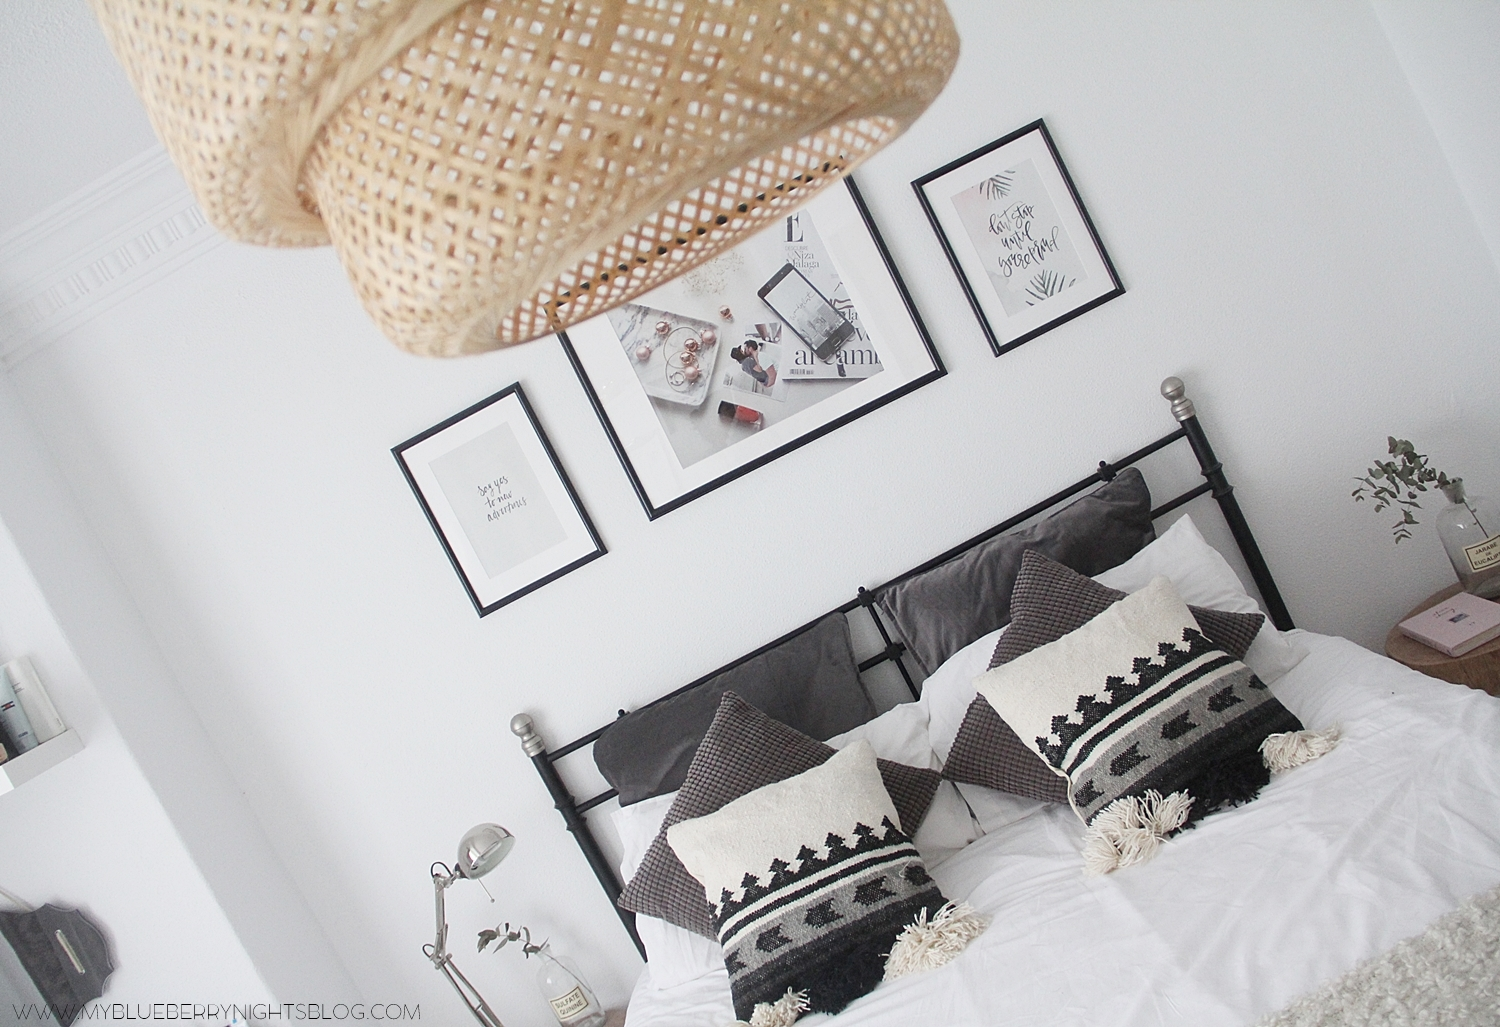 sinnerlig-lamp-deco-bedroom-nordic-laredoute-myblueberrynightshome